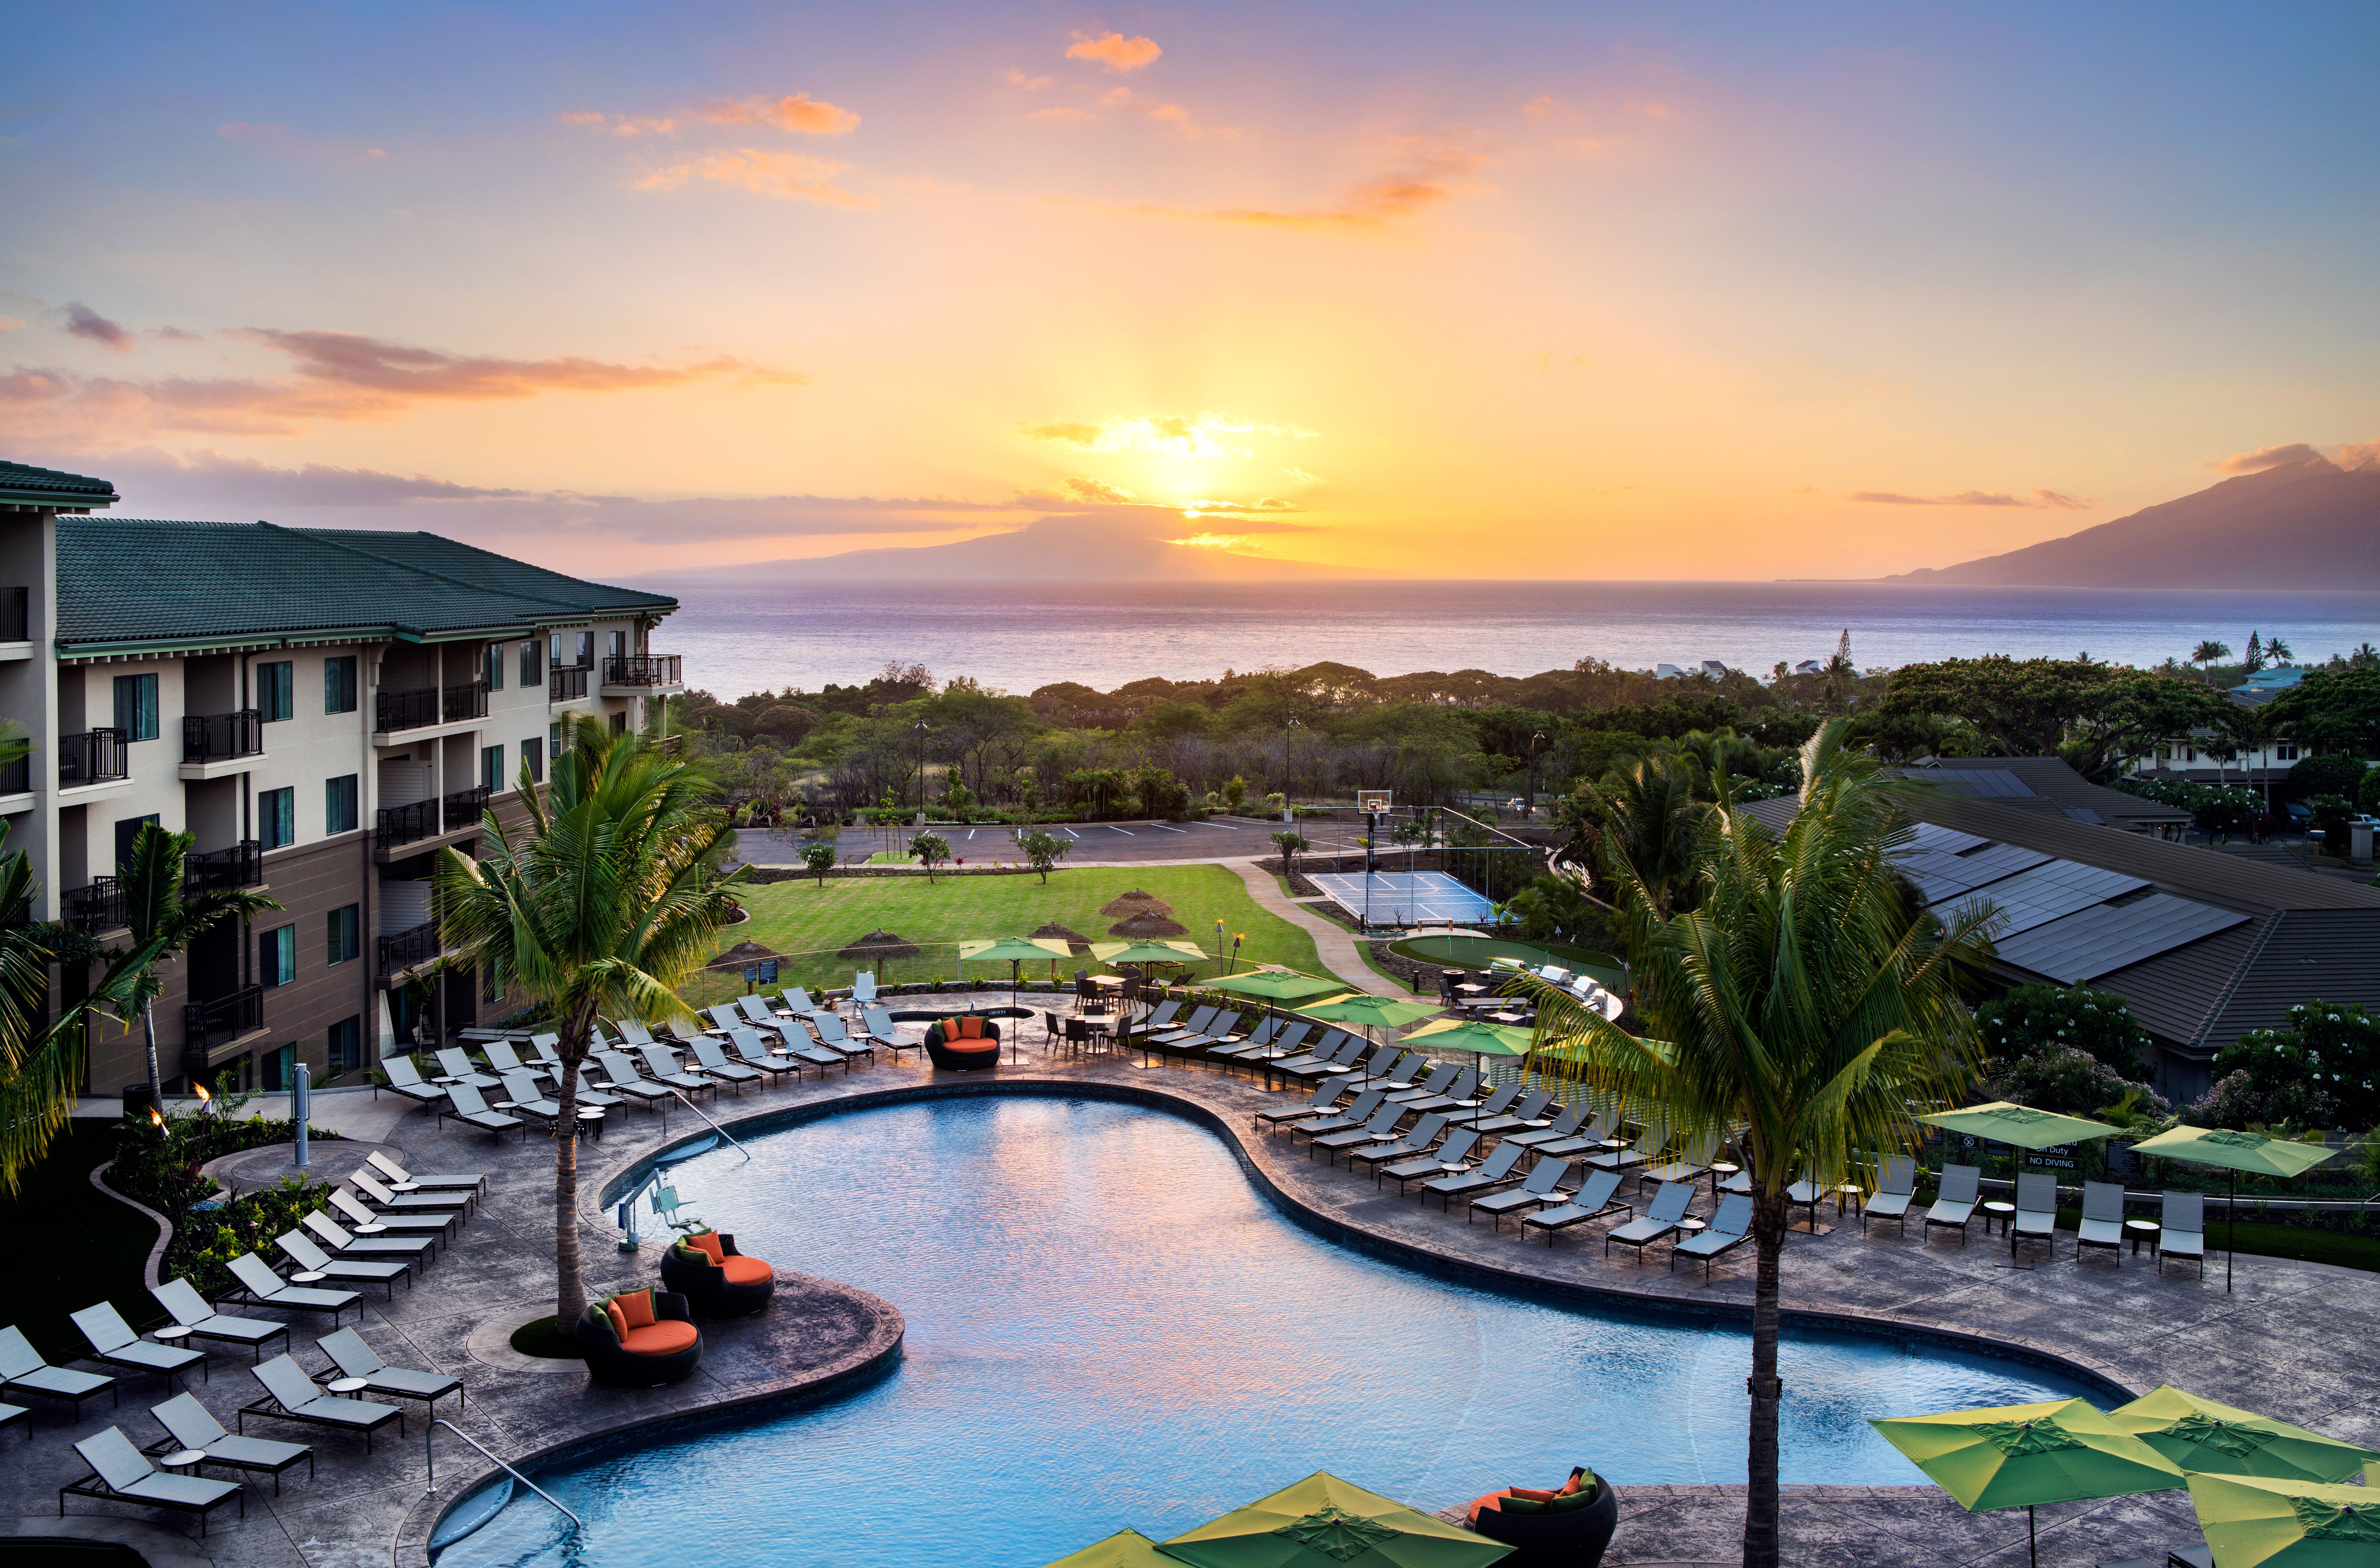 The Top 10 USA Vacation Destinations For 2018